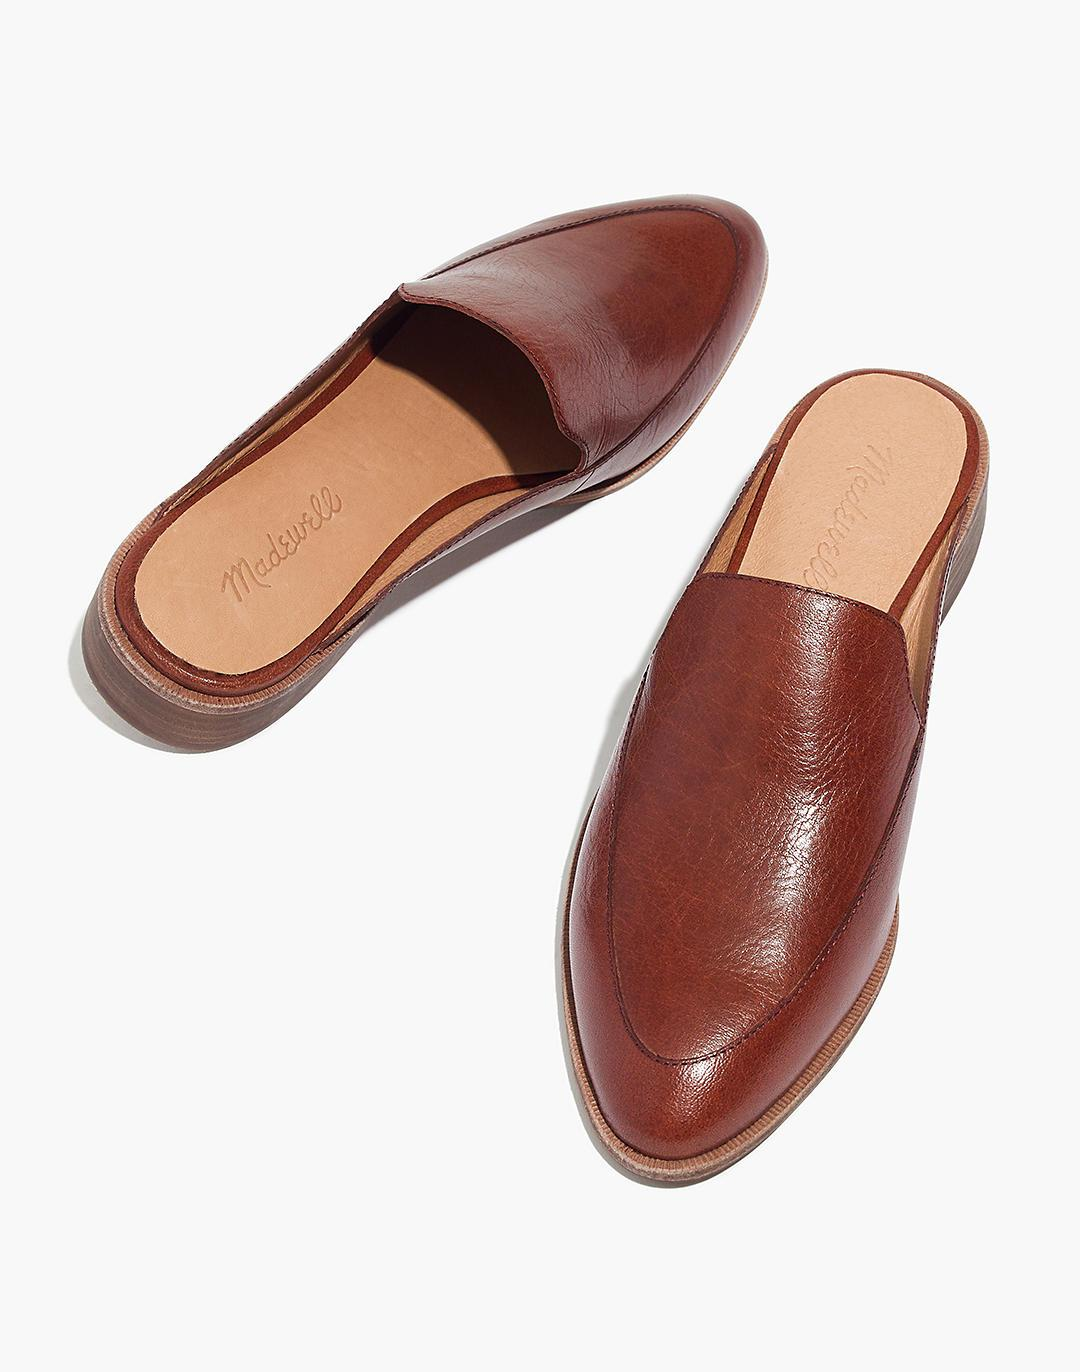 The Frances Loafer Mule in Leather